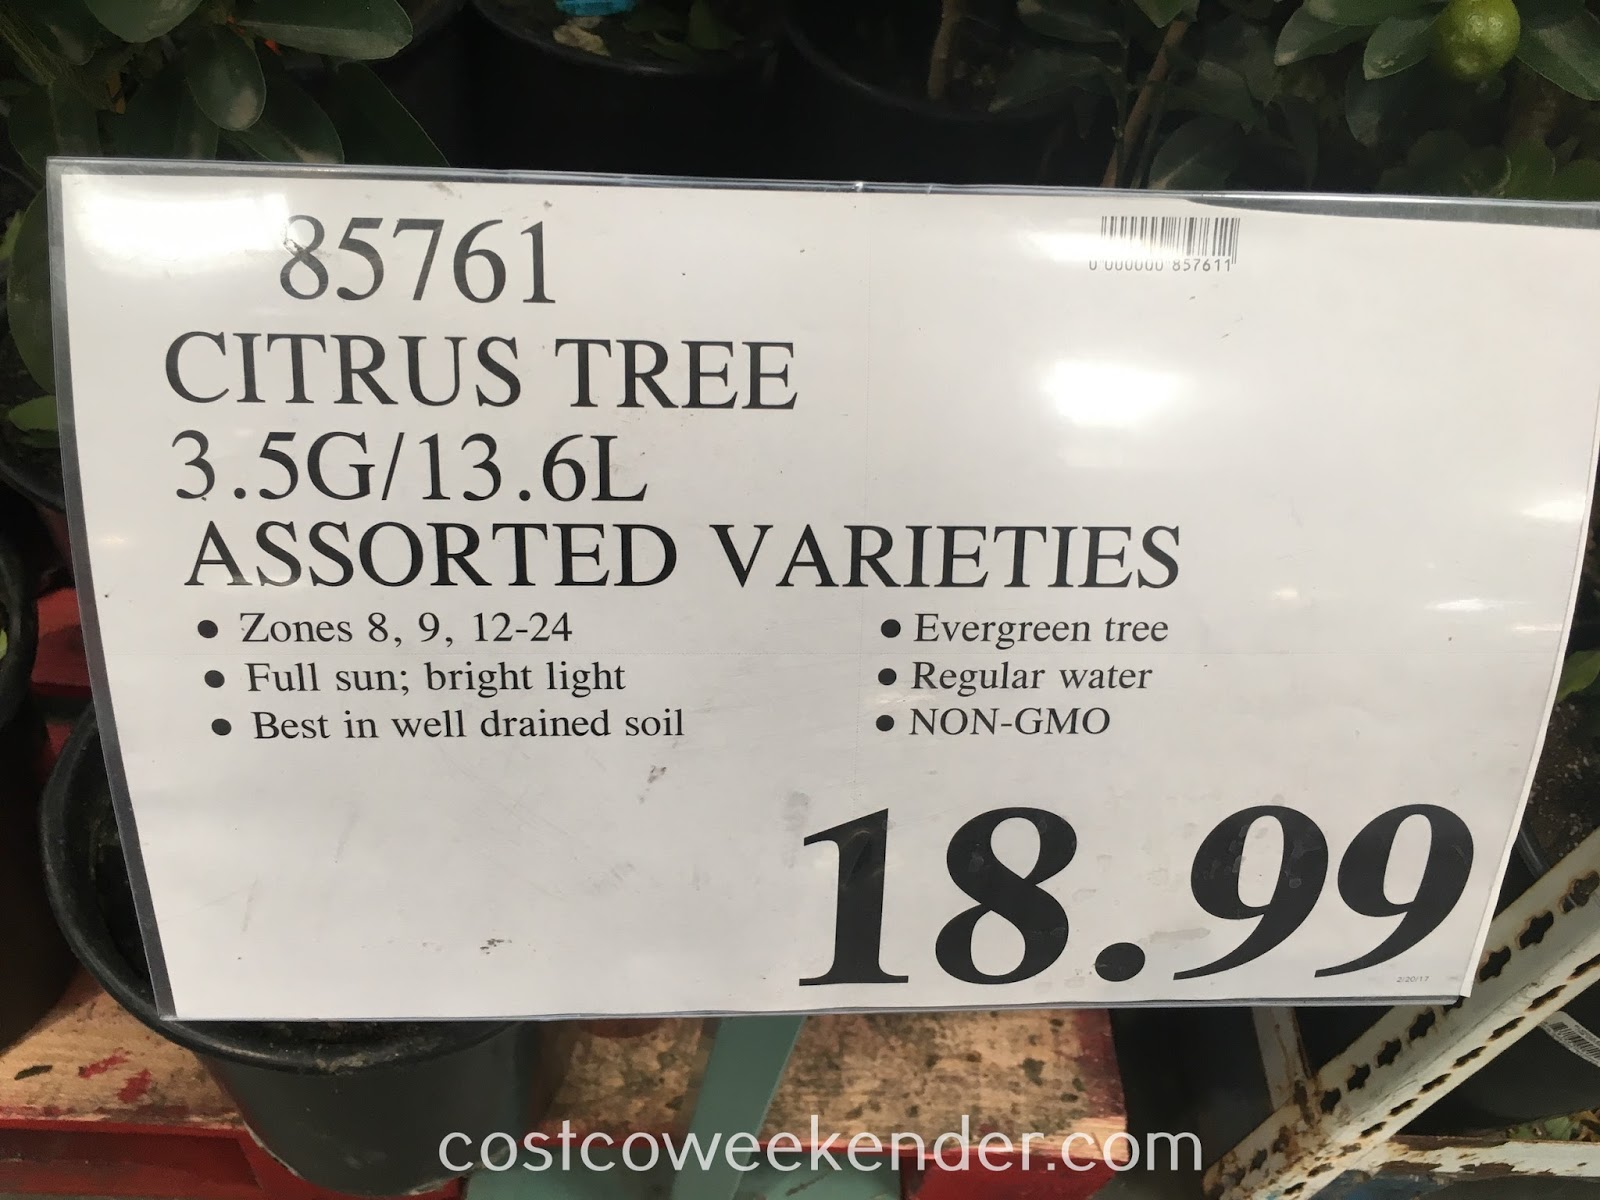 Deal for assorted varieties of citrus fruit trees at Costco